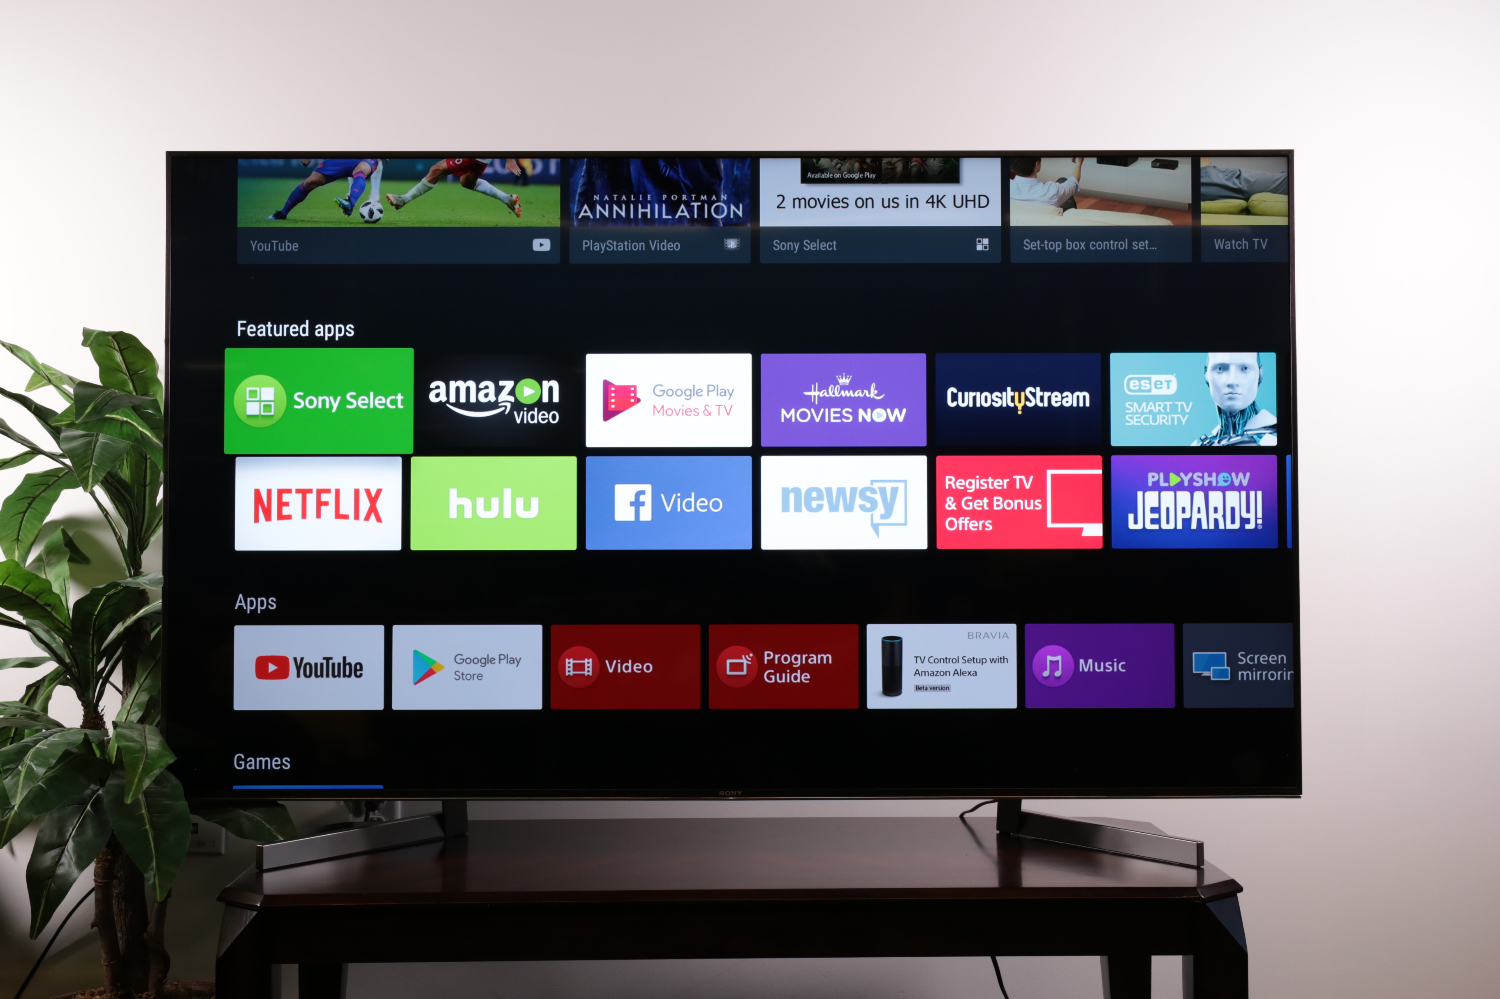 How to find and install apps on your Sony TV - Sony Bravia Android